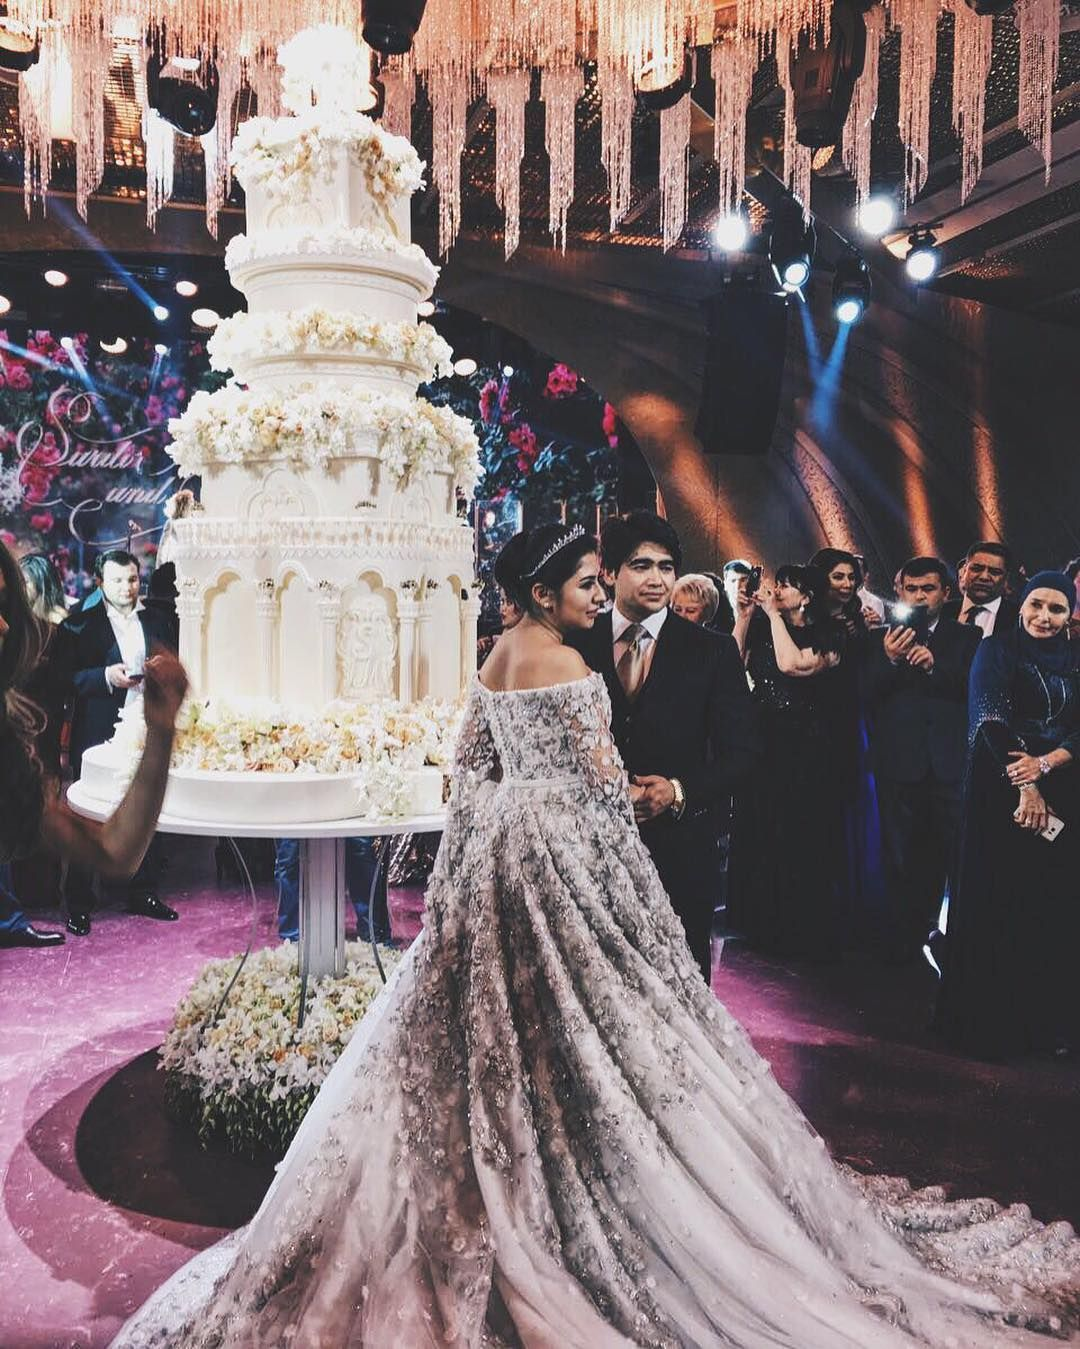 A 10 Foot Tall Cake 900 Guests Over Half A Million Dollars For A Dress Even One Of Those Th Russian Wedding Top Wedding Dresses Most Expensive Wedding Dress